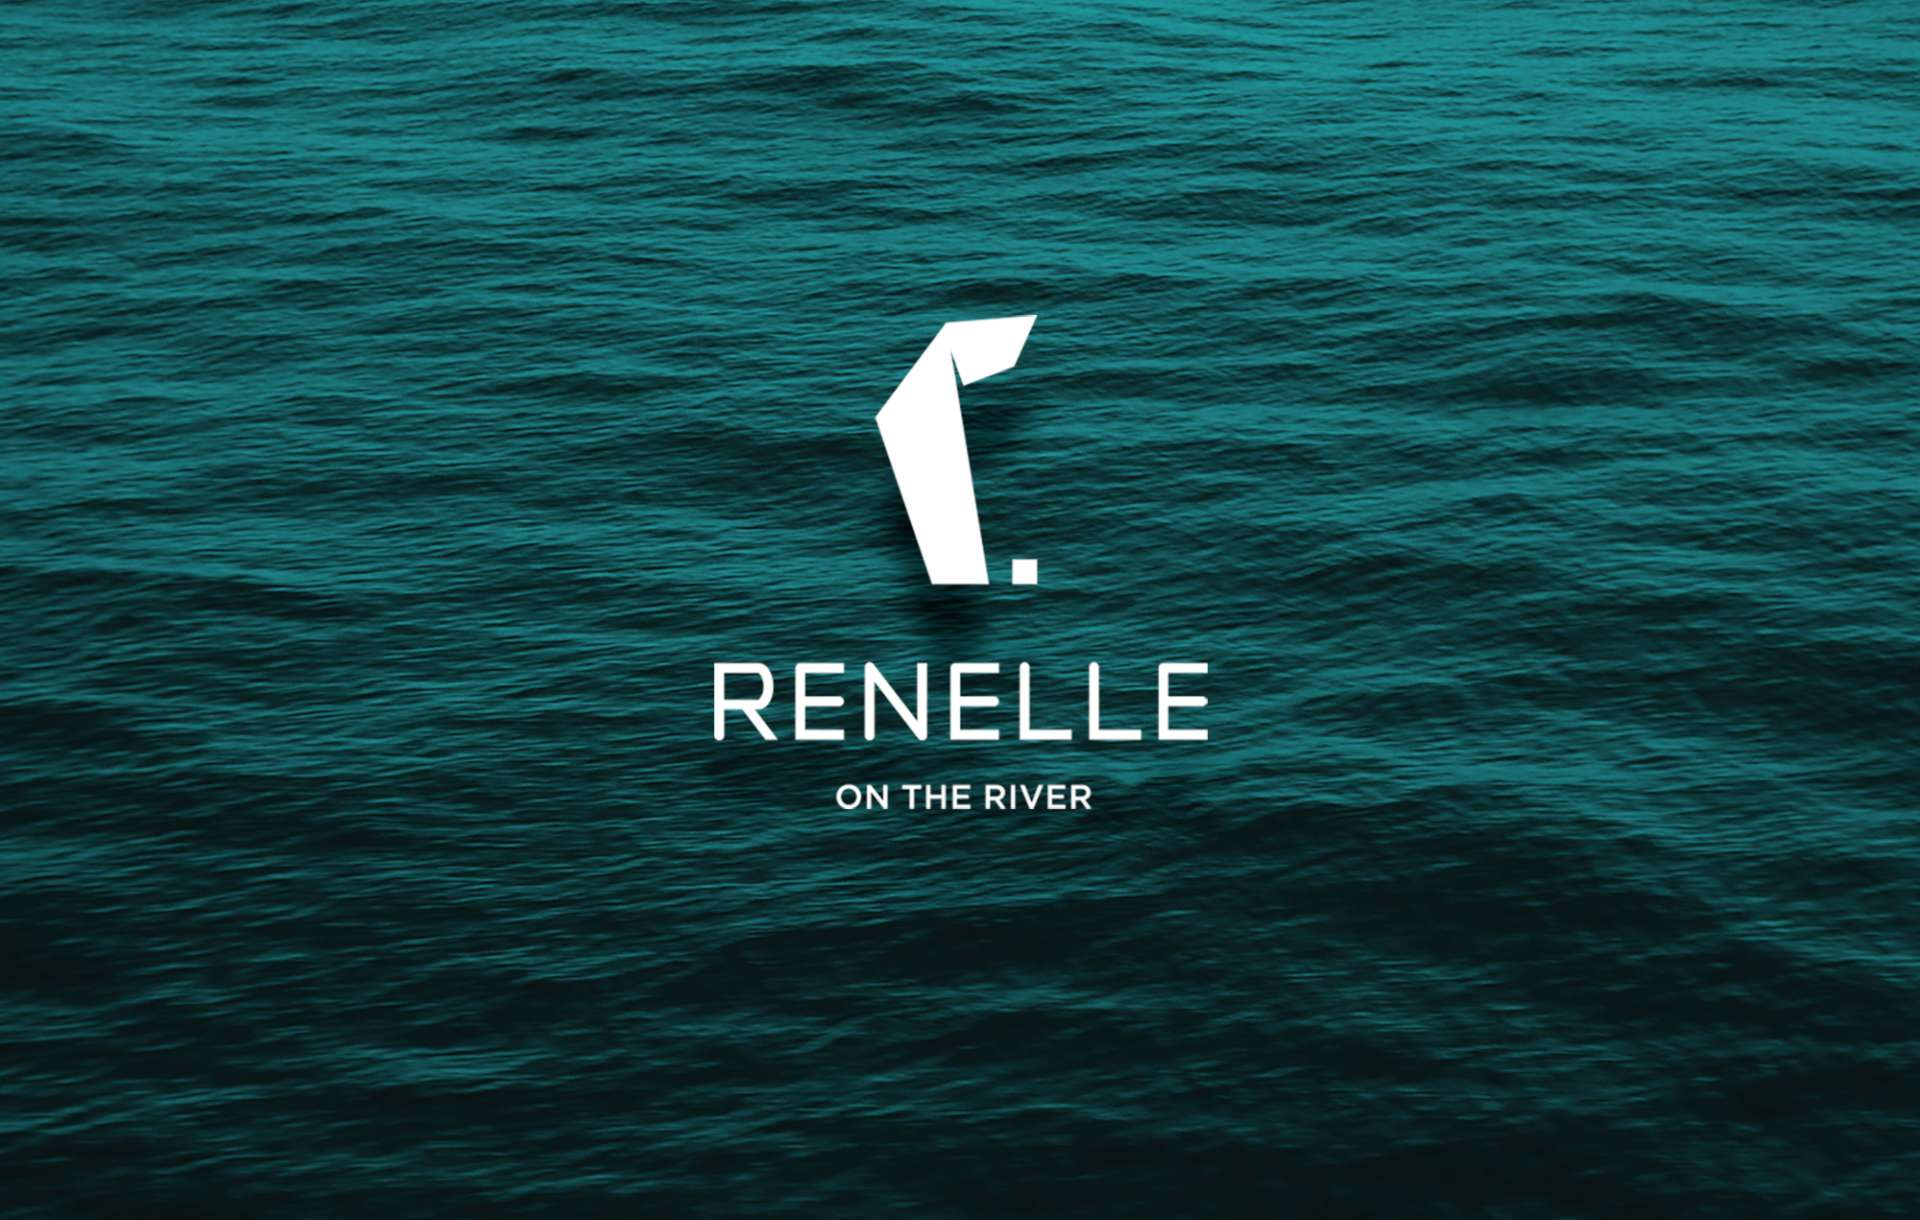 Logo design for Renelle on the River